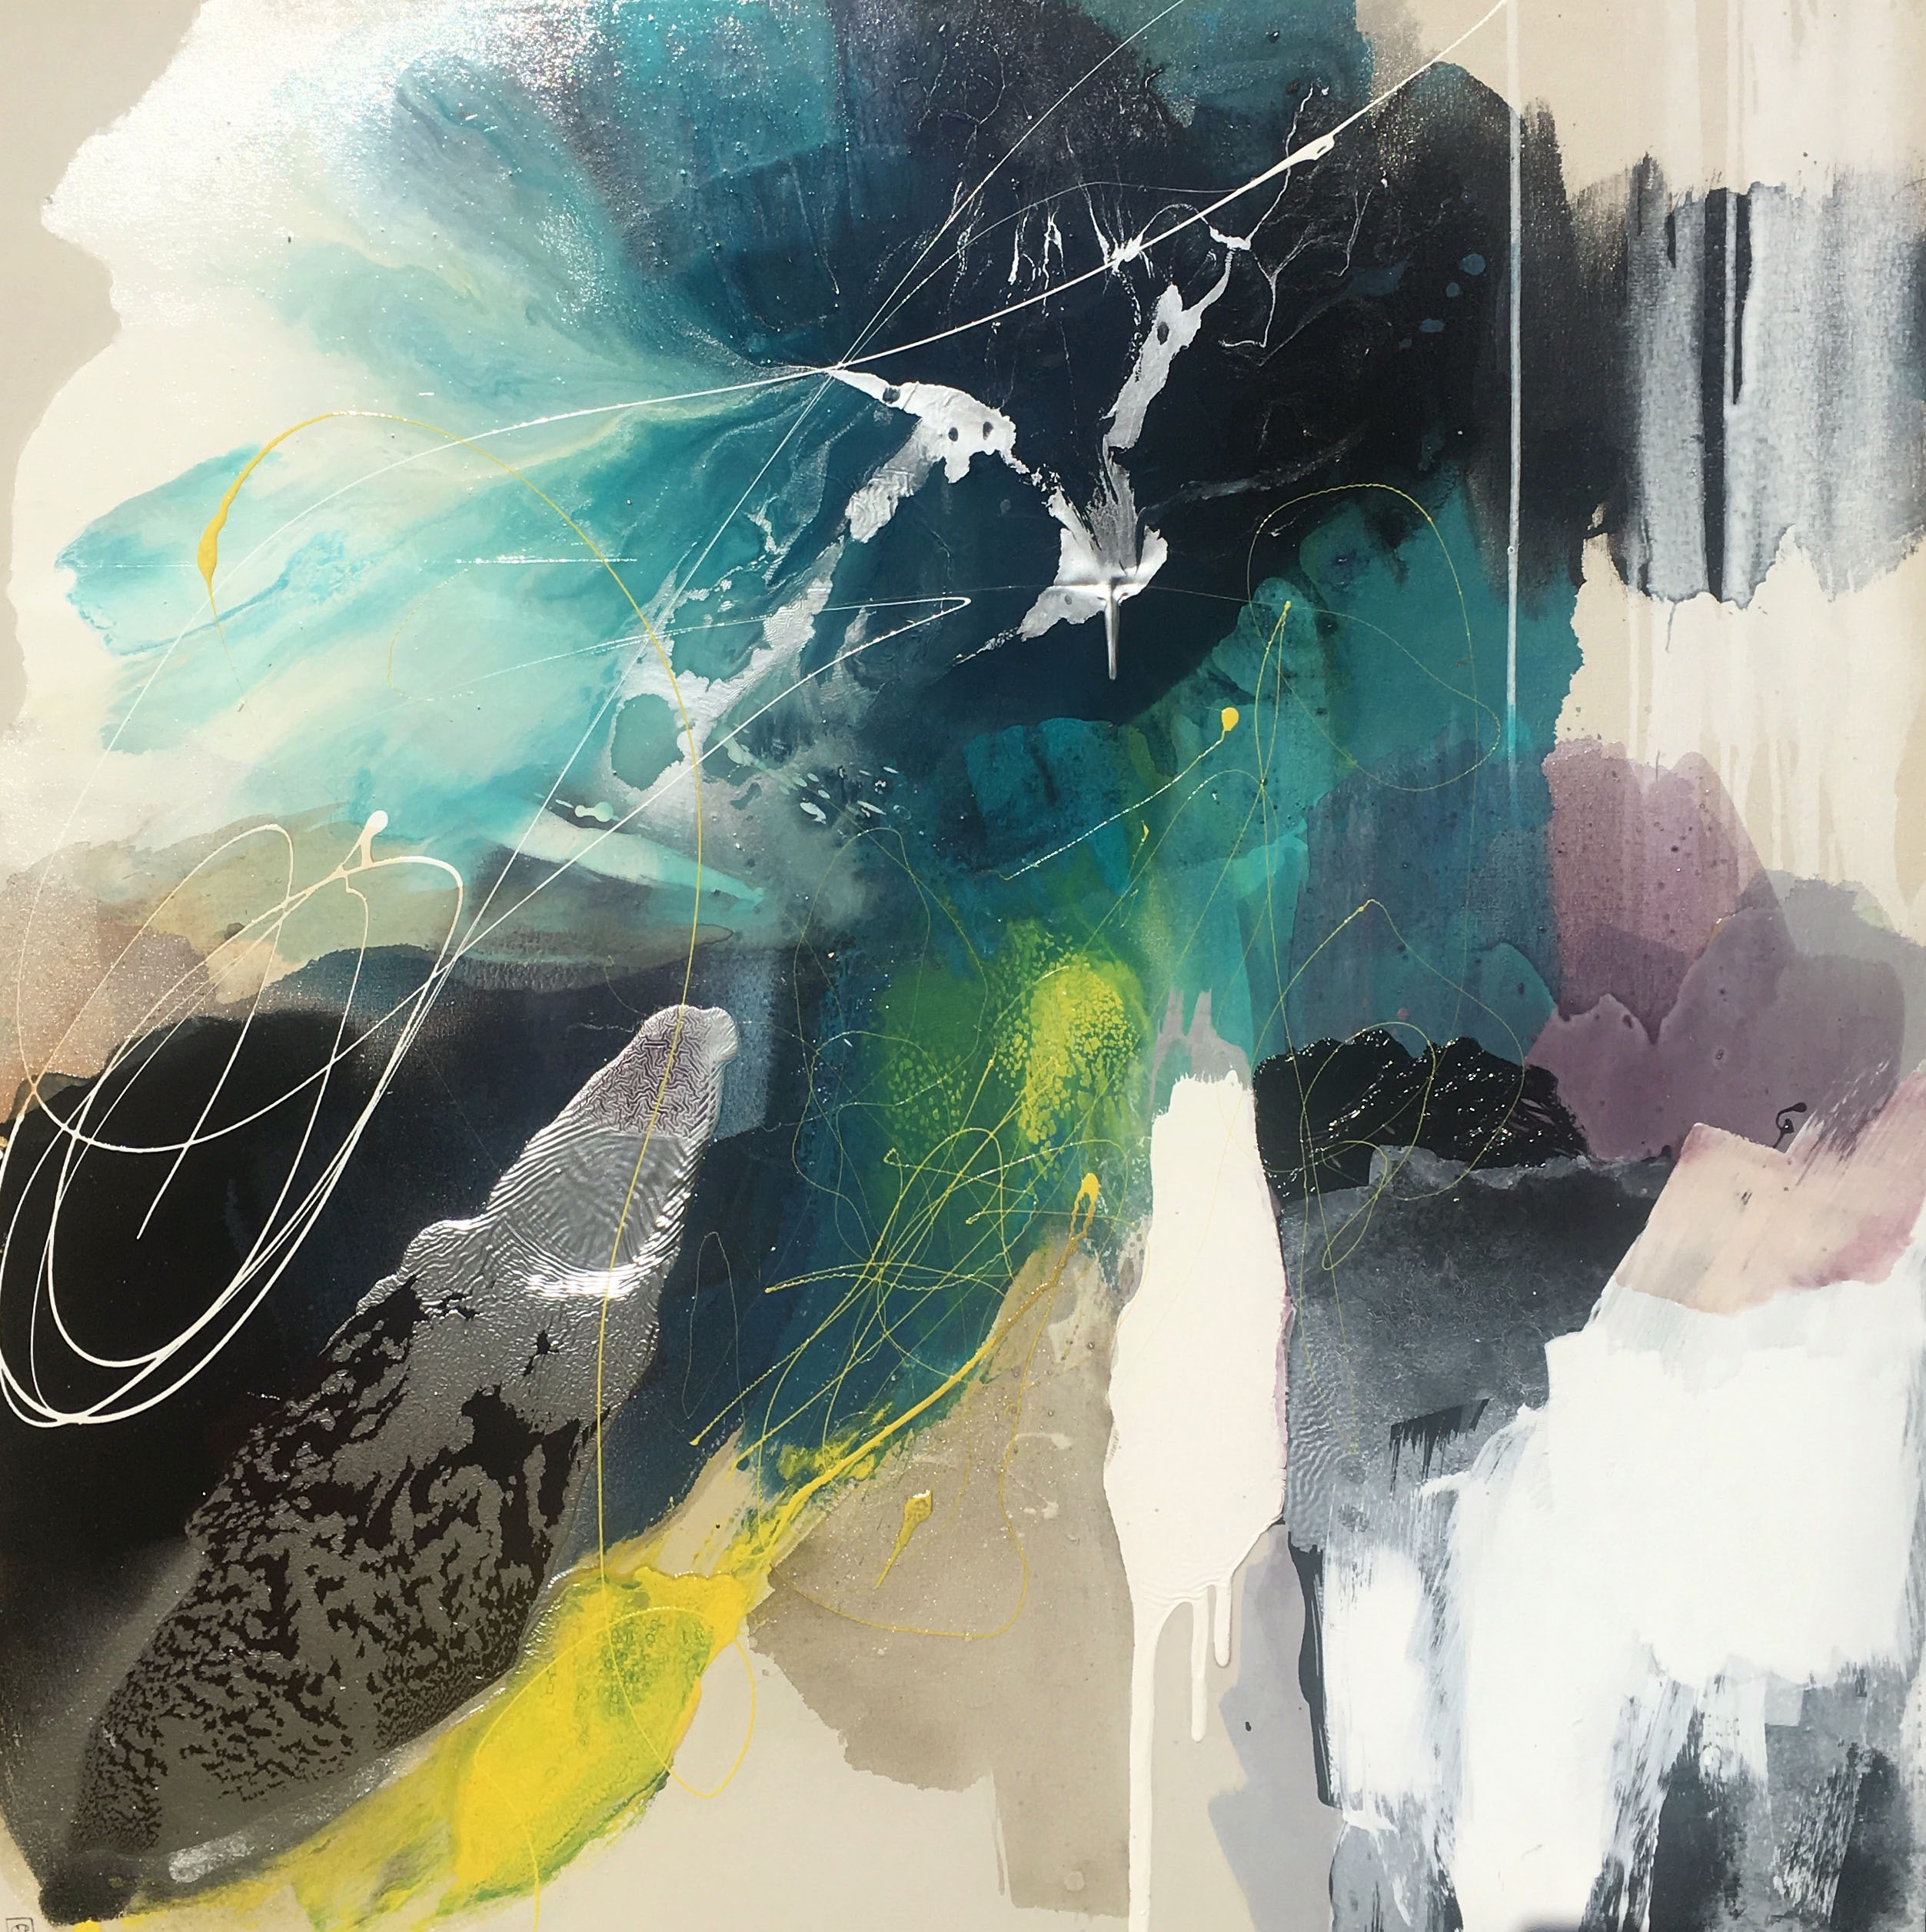 Vicky Sanders Abstract - Submerge